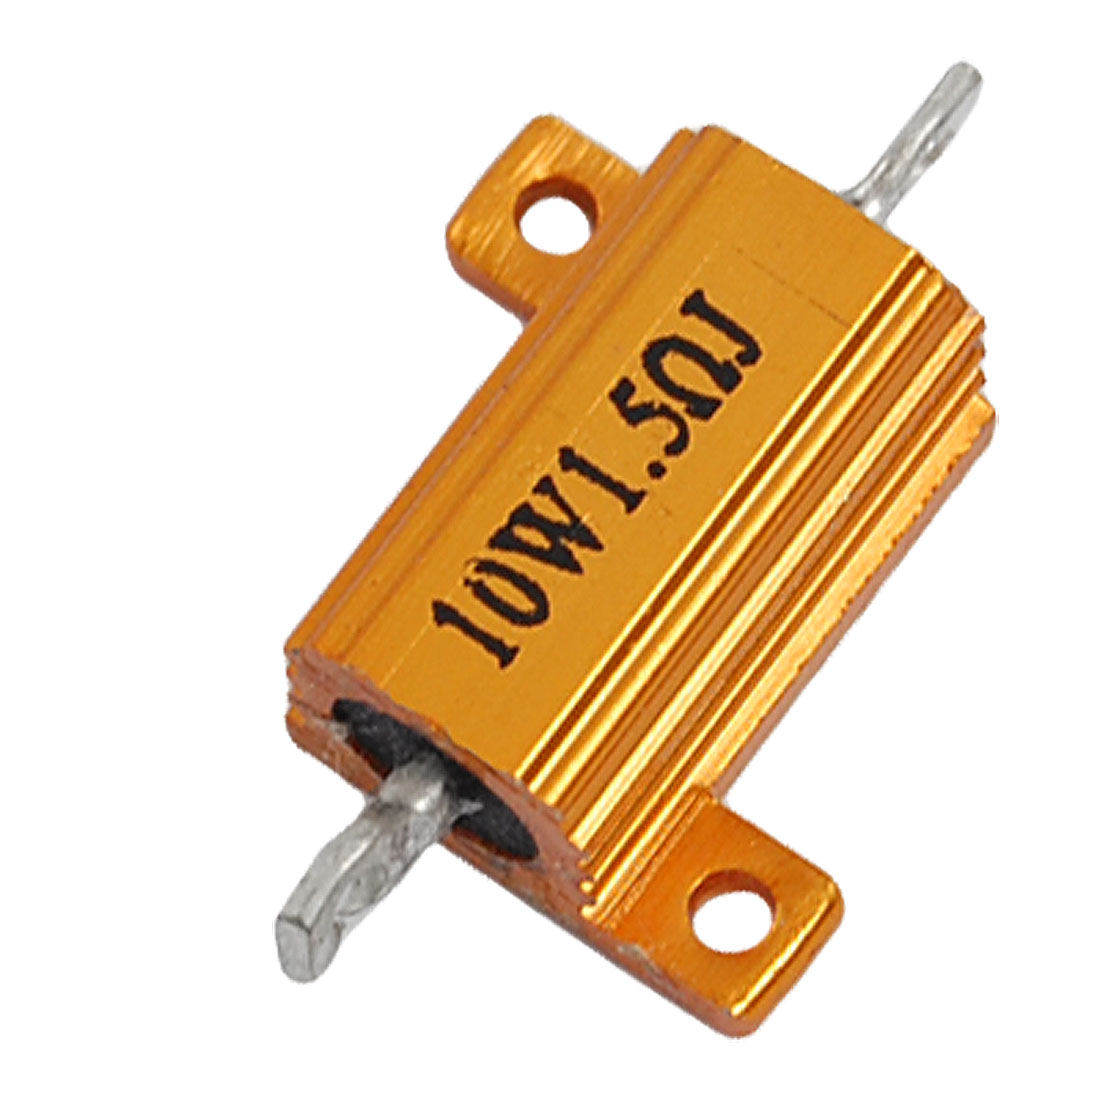 10W Power 5% 1.5 Ohm Resistance Value Aluminum Casing Resistor